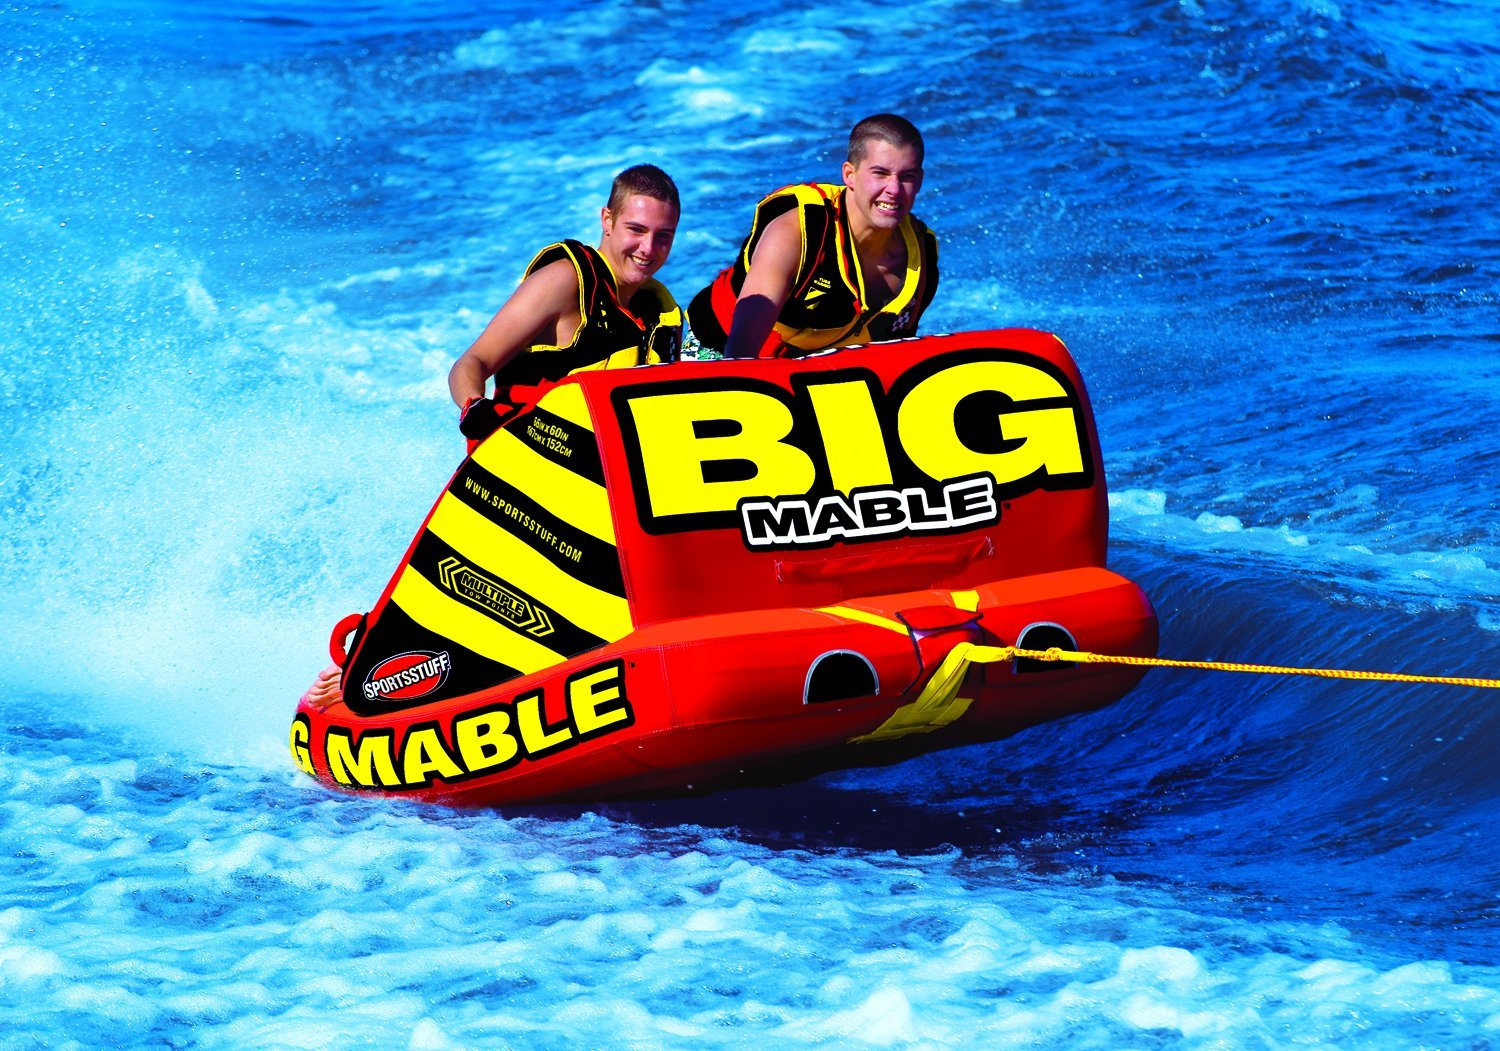 Sportsstuff Big Mable Towable Tube Waterskiing Tow Harness For Towables Sports Outdoors